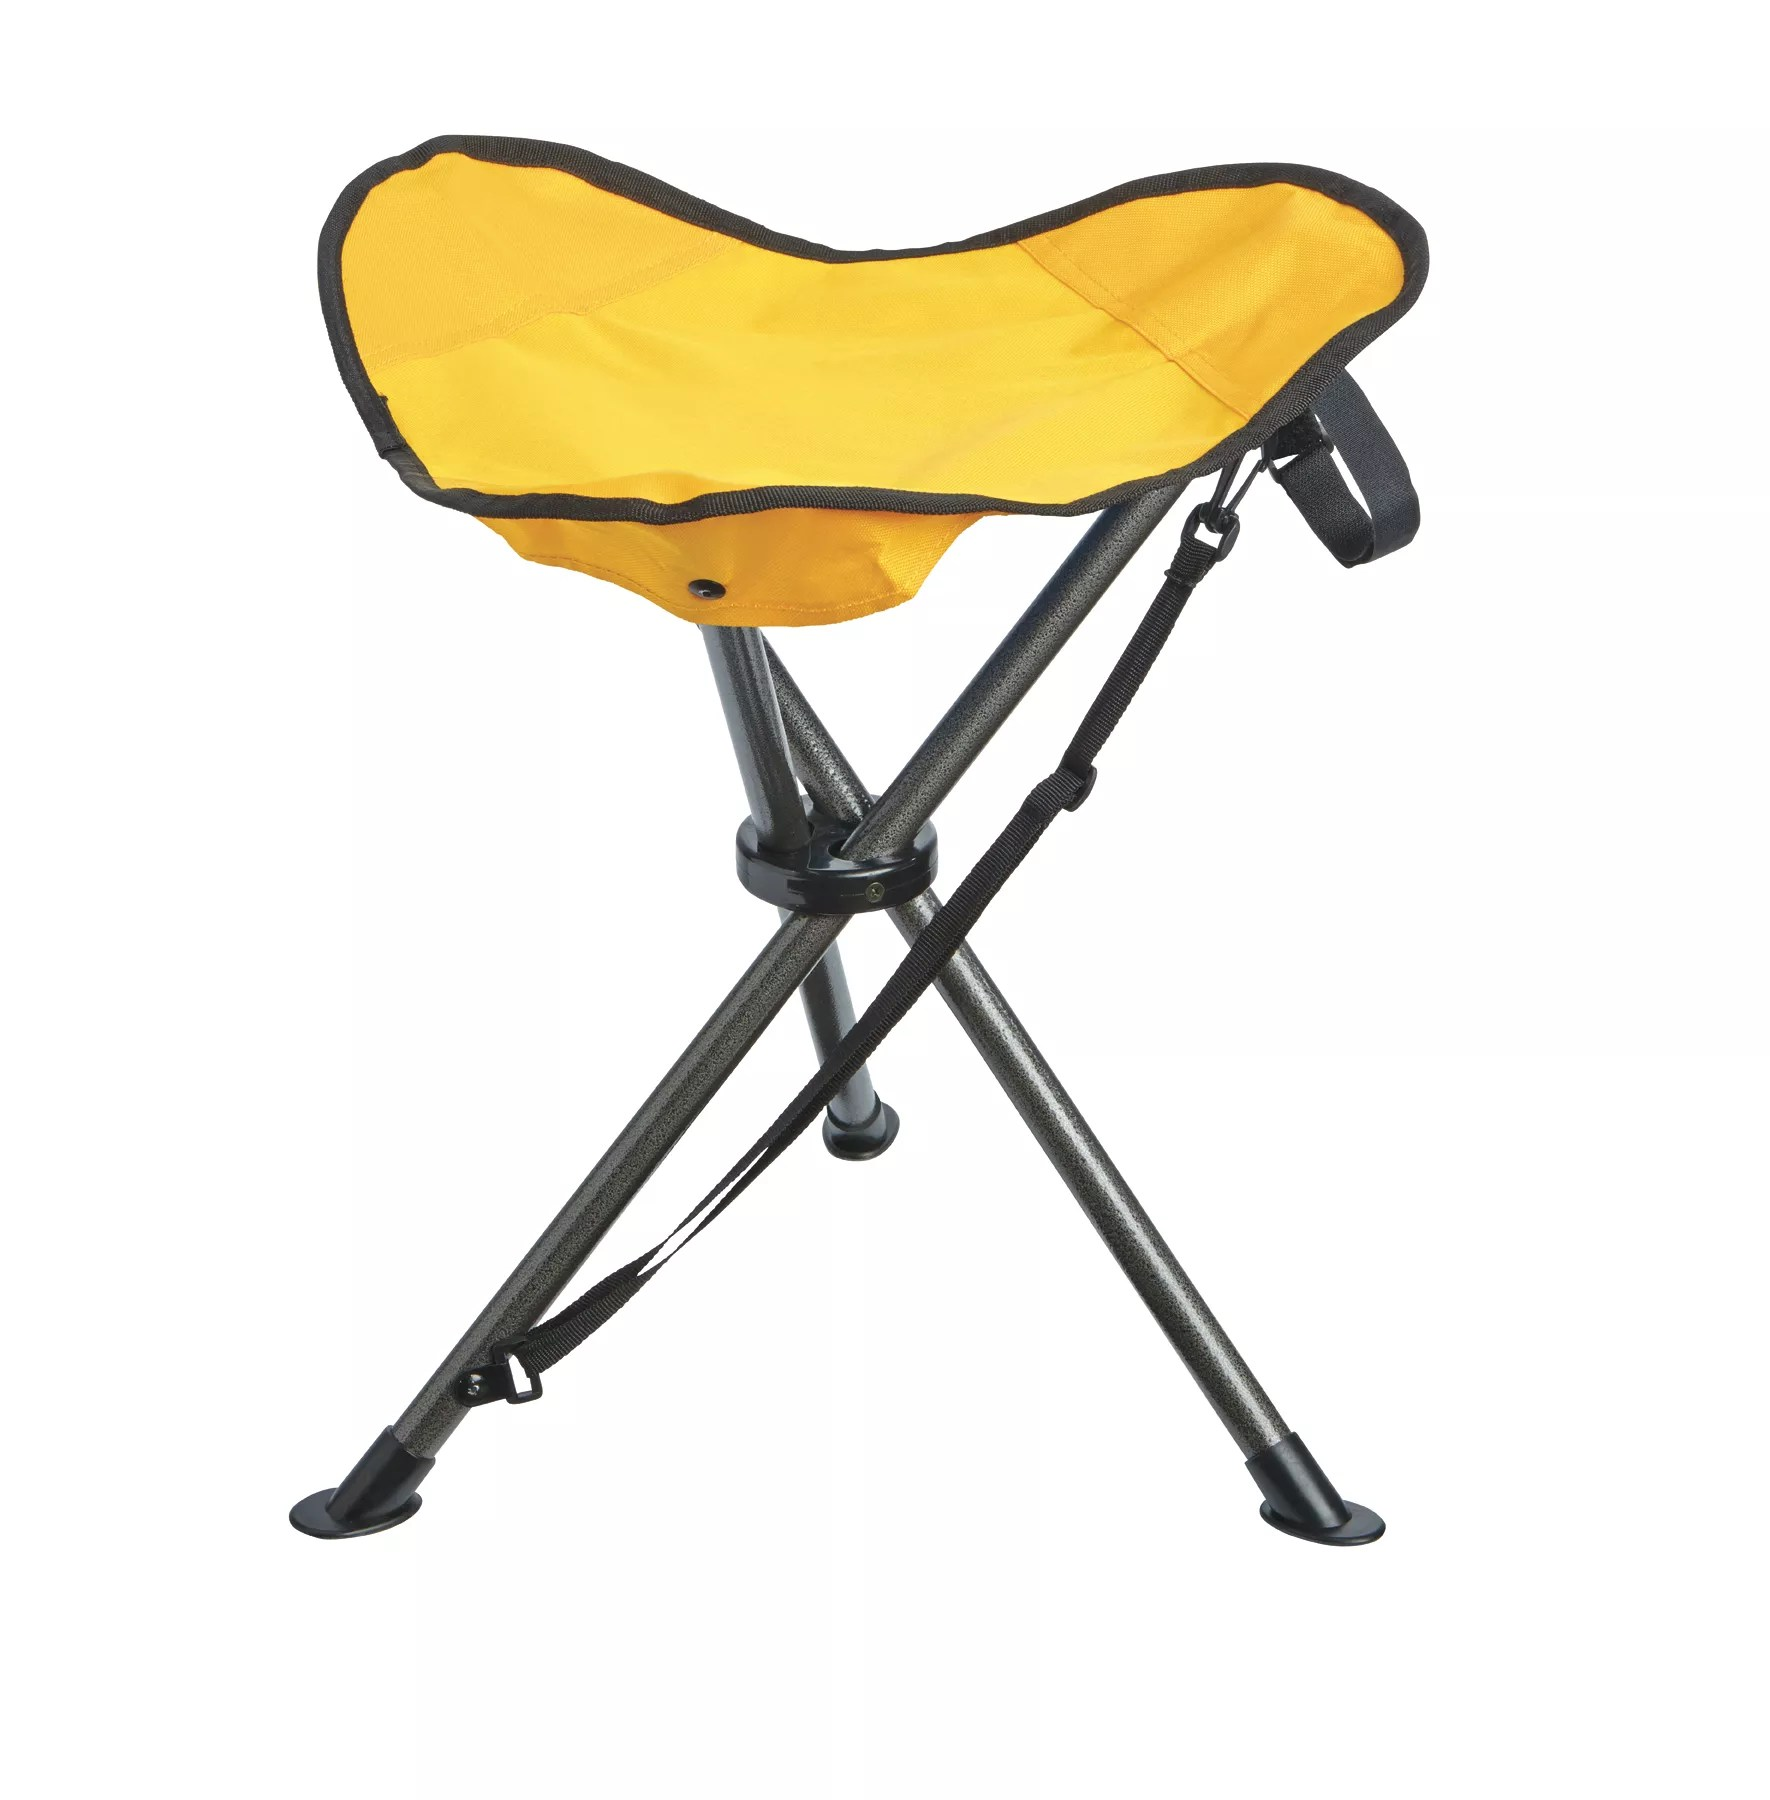 3 legged chair swivel seat covers quest oversized stool dick s sporting goods noimagefound 1